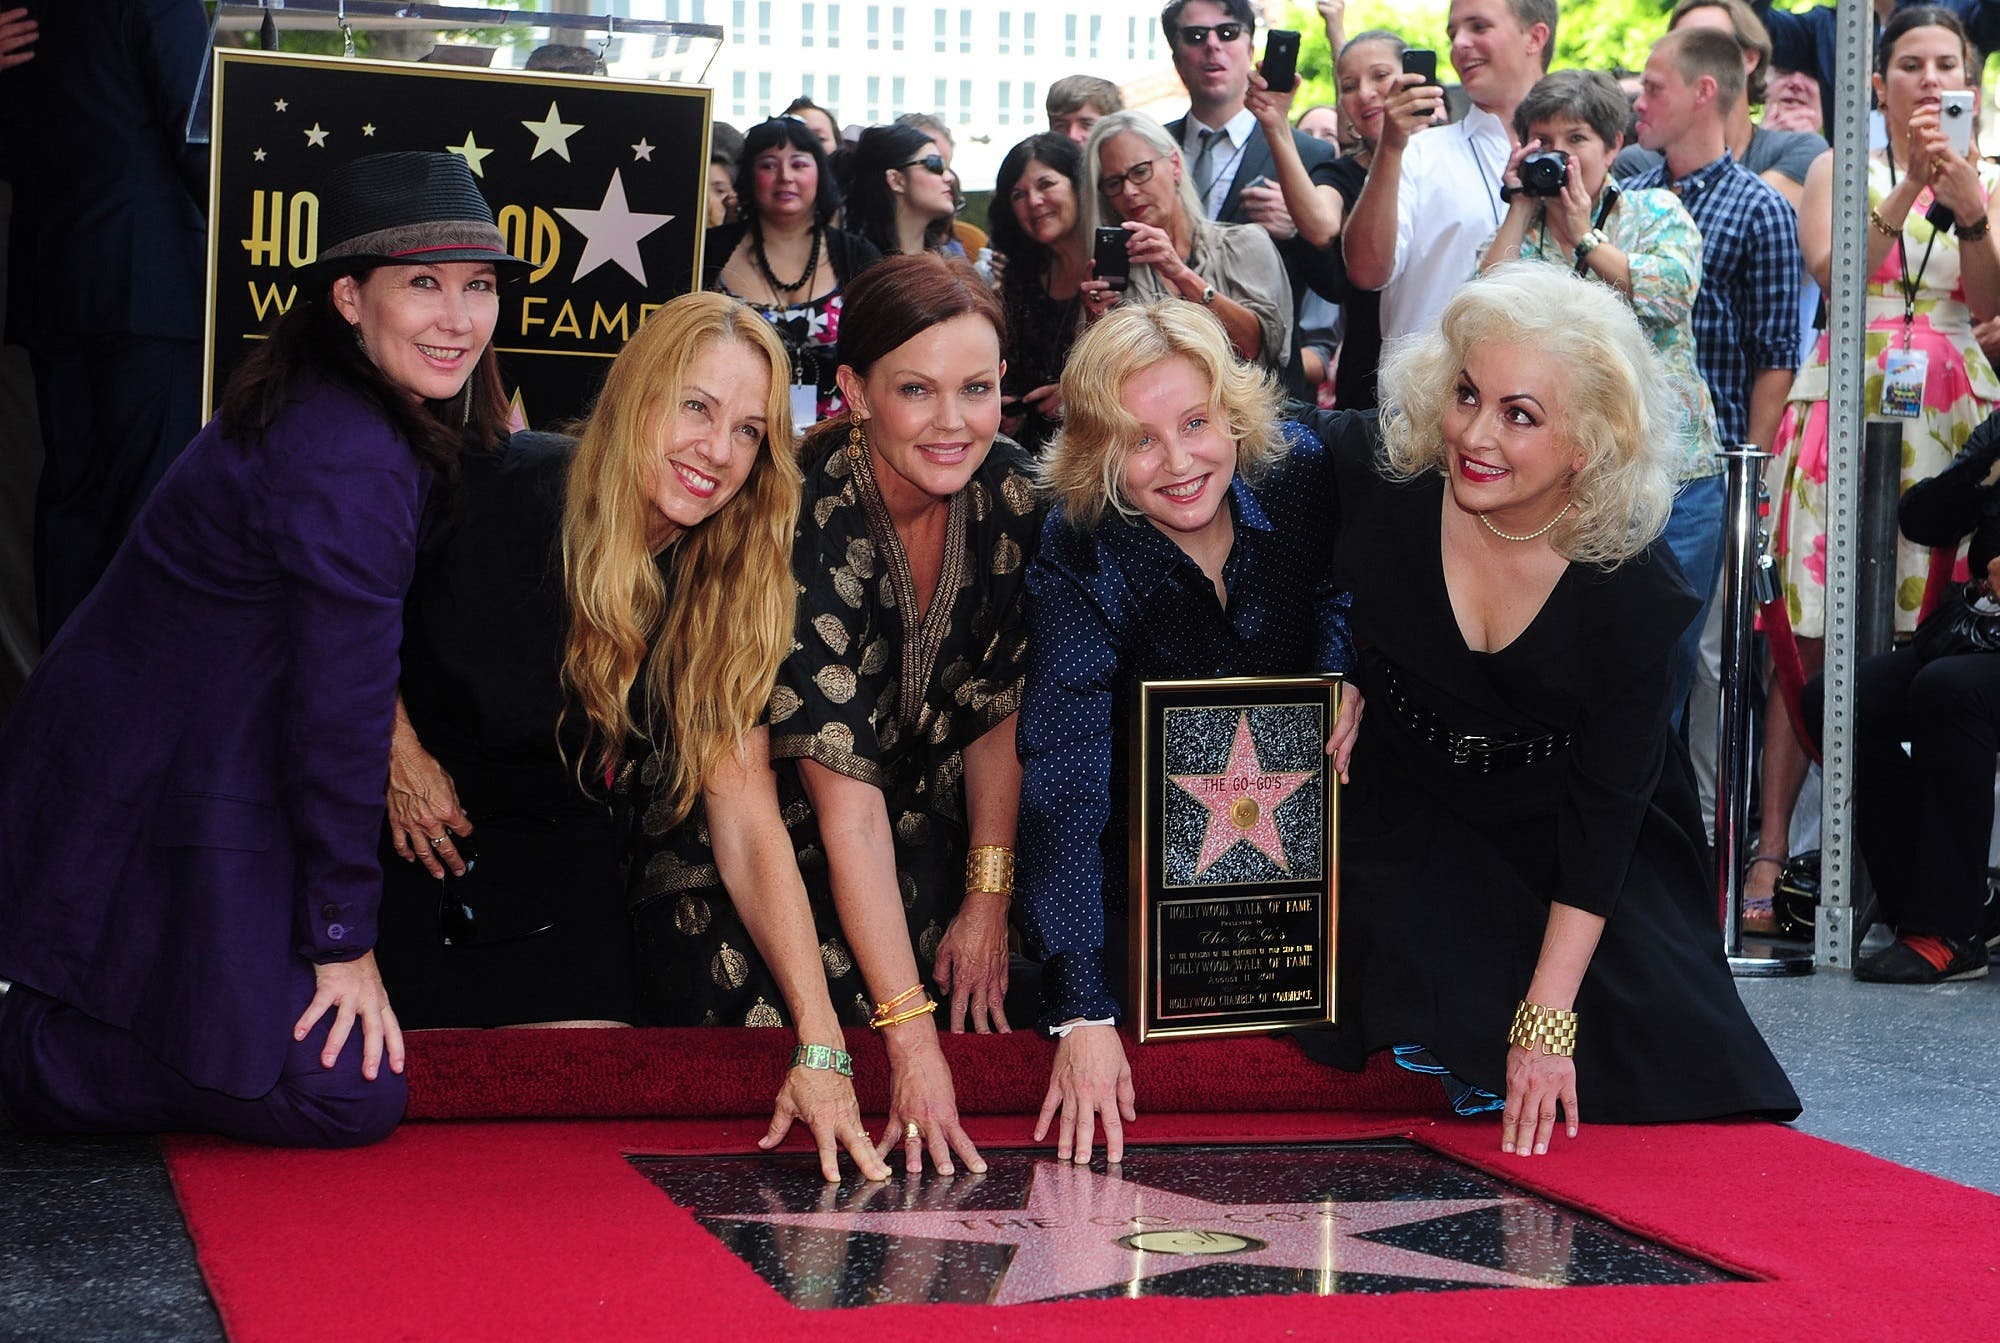 The all-female rock band The Go-Go's pose beside their star on Hollywood's Walk of Fame on August 11, 2011 in Hollywood. (AFP)